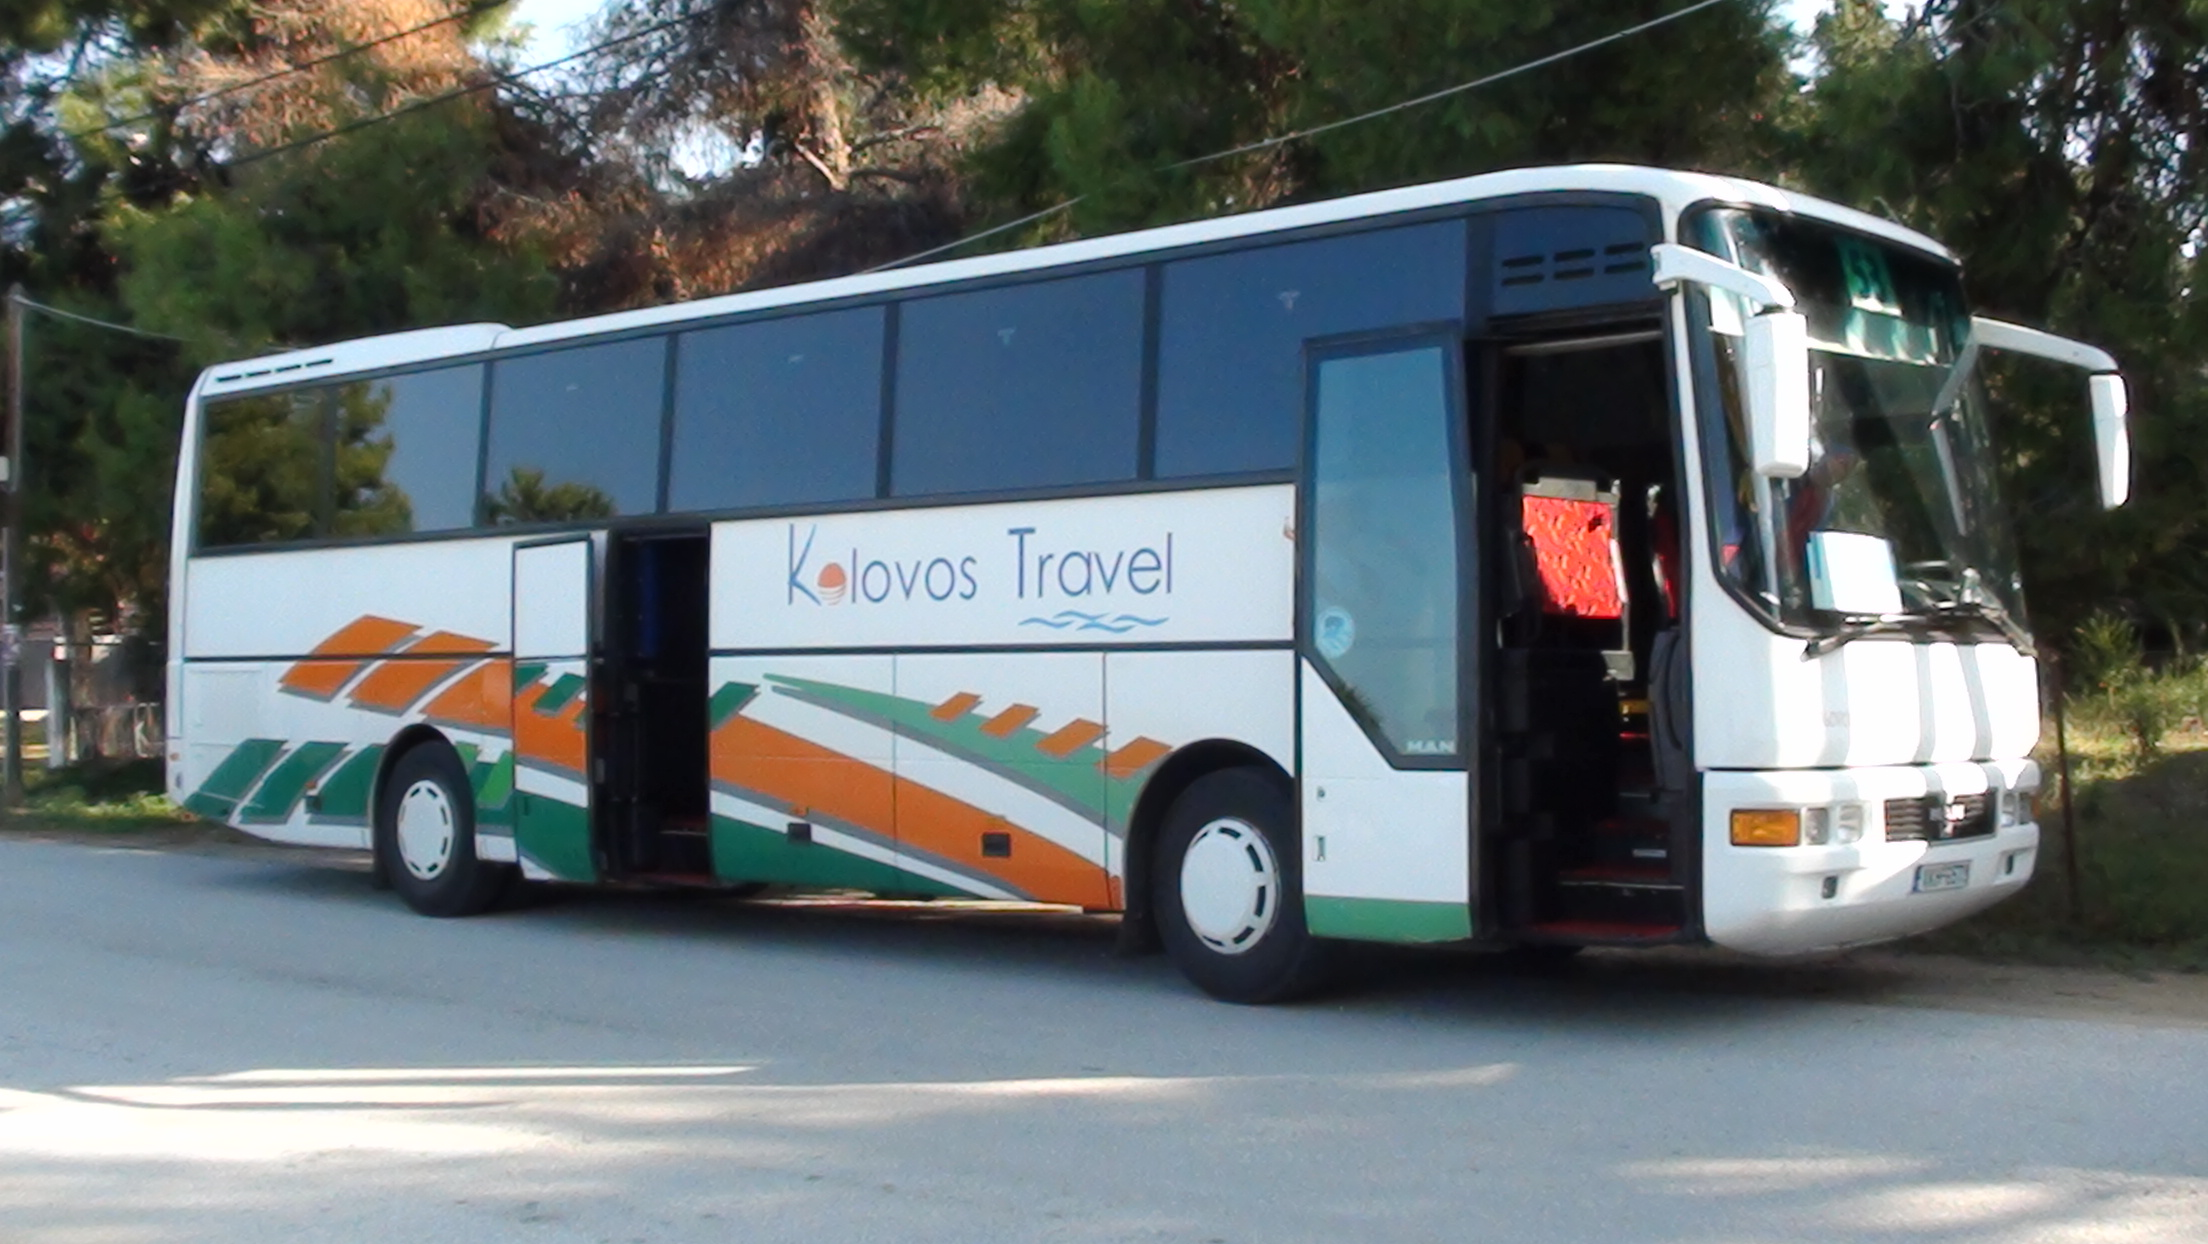 Bus-Hire-Halkidiki-Travel-Agency-Kolovos-Travel-Neos-Marmaras-002